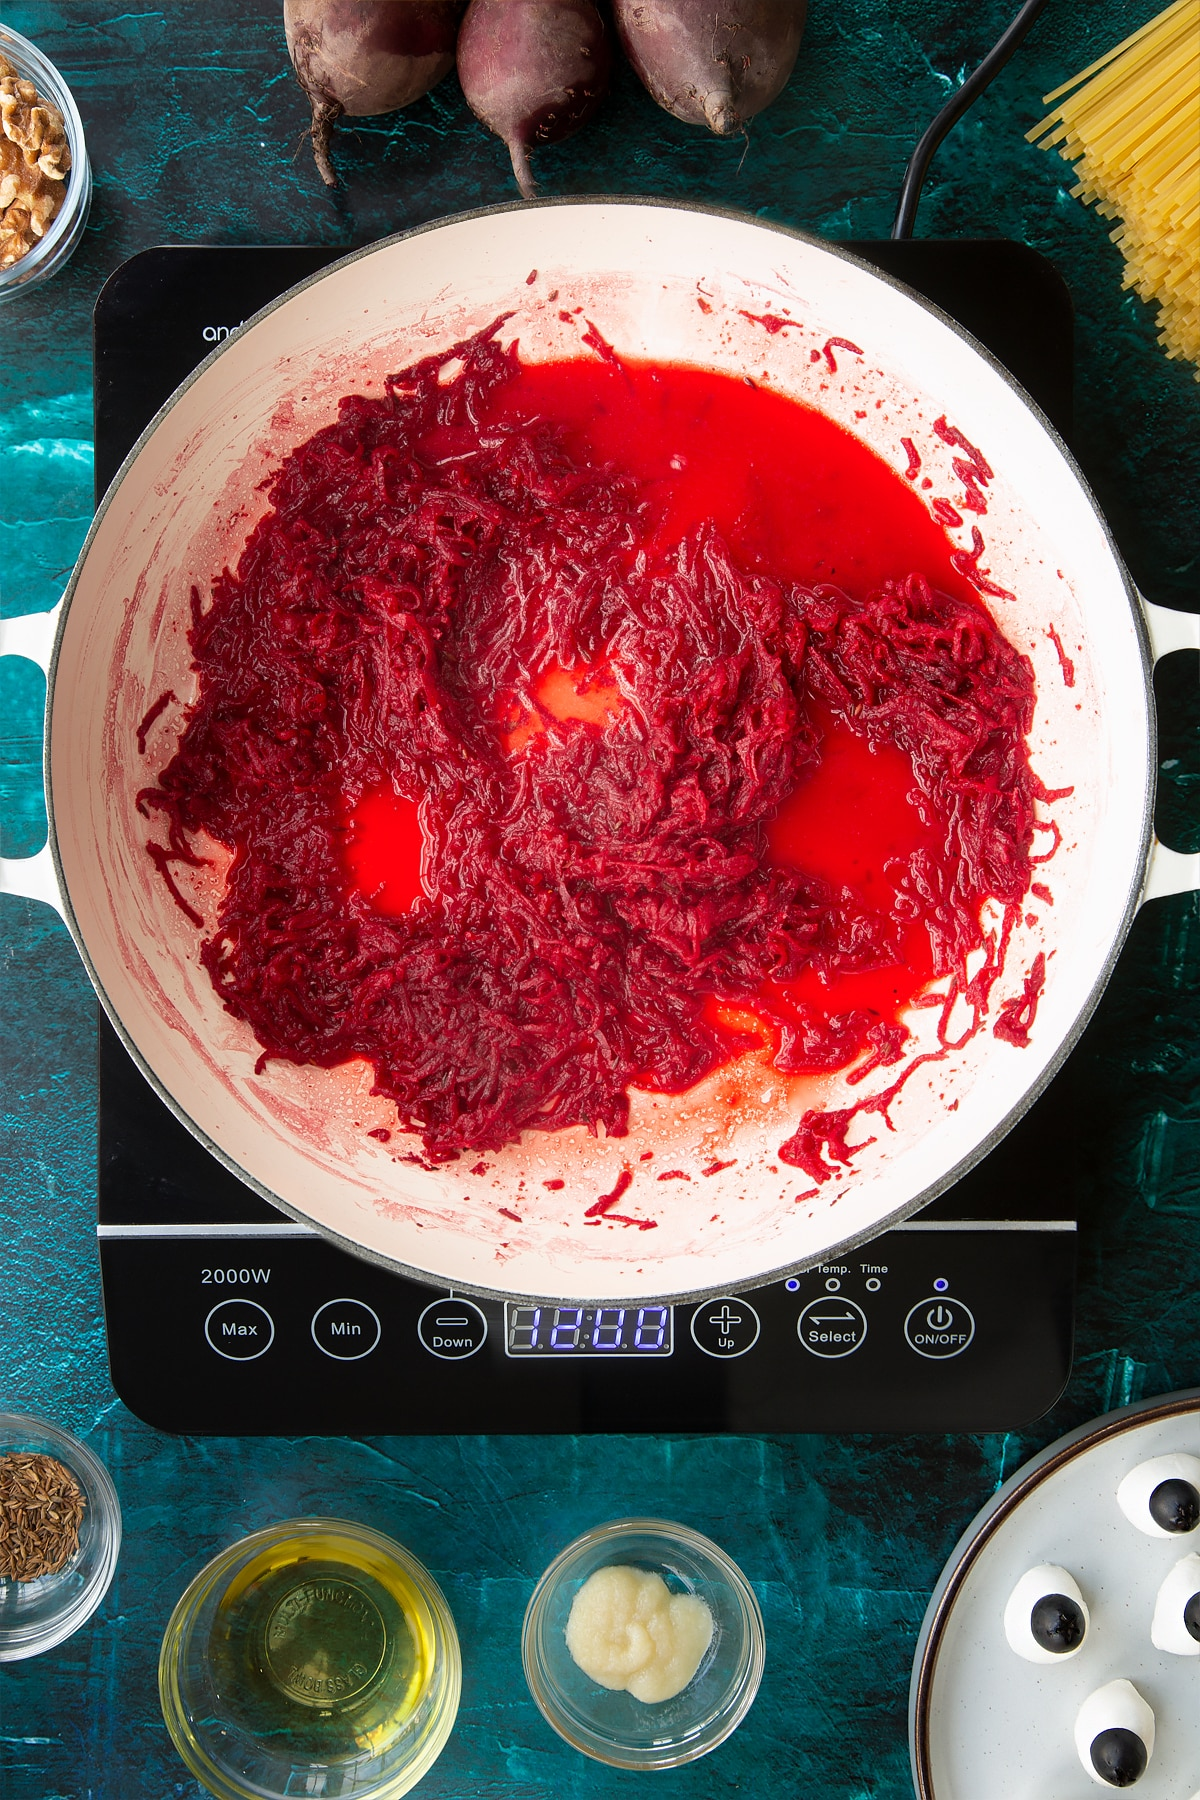 Sweated beetroot in a pan with added water. Ingredients to make a Halloween pasta recipe surround the pan.